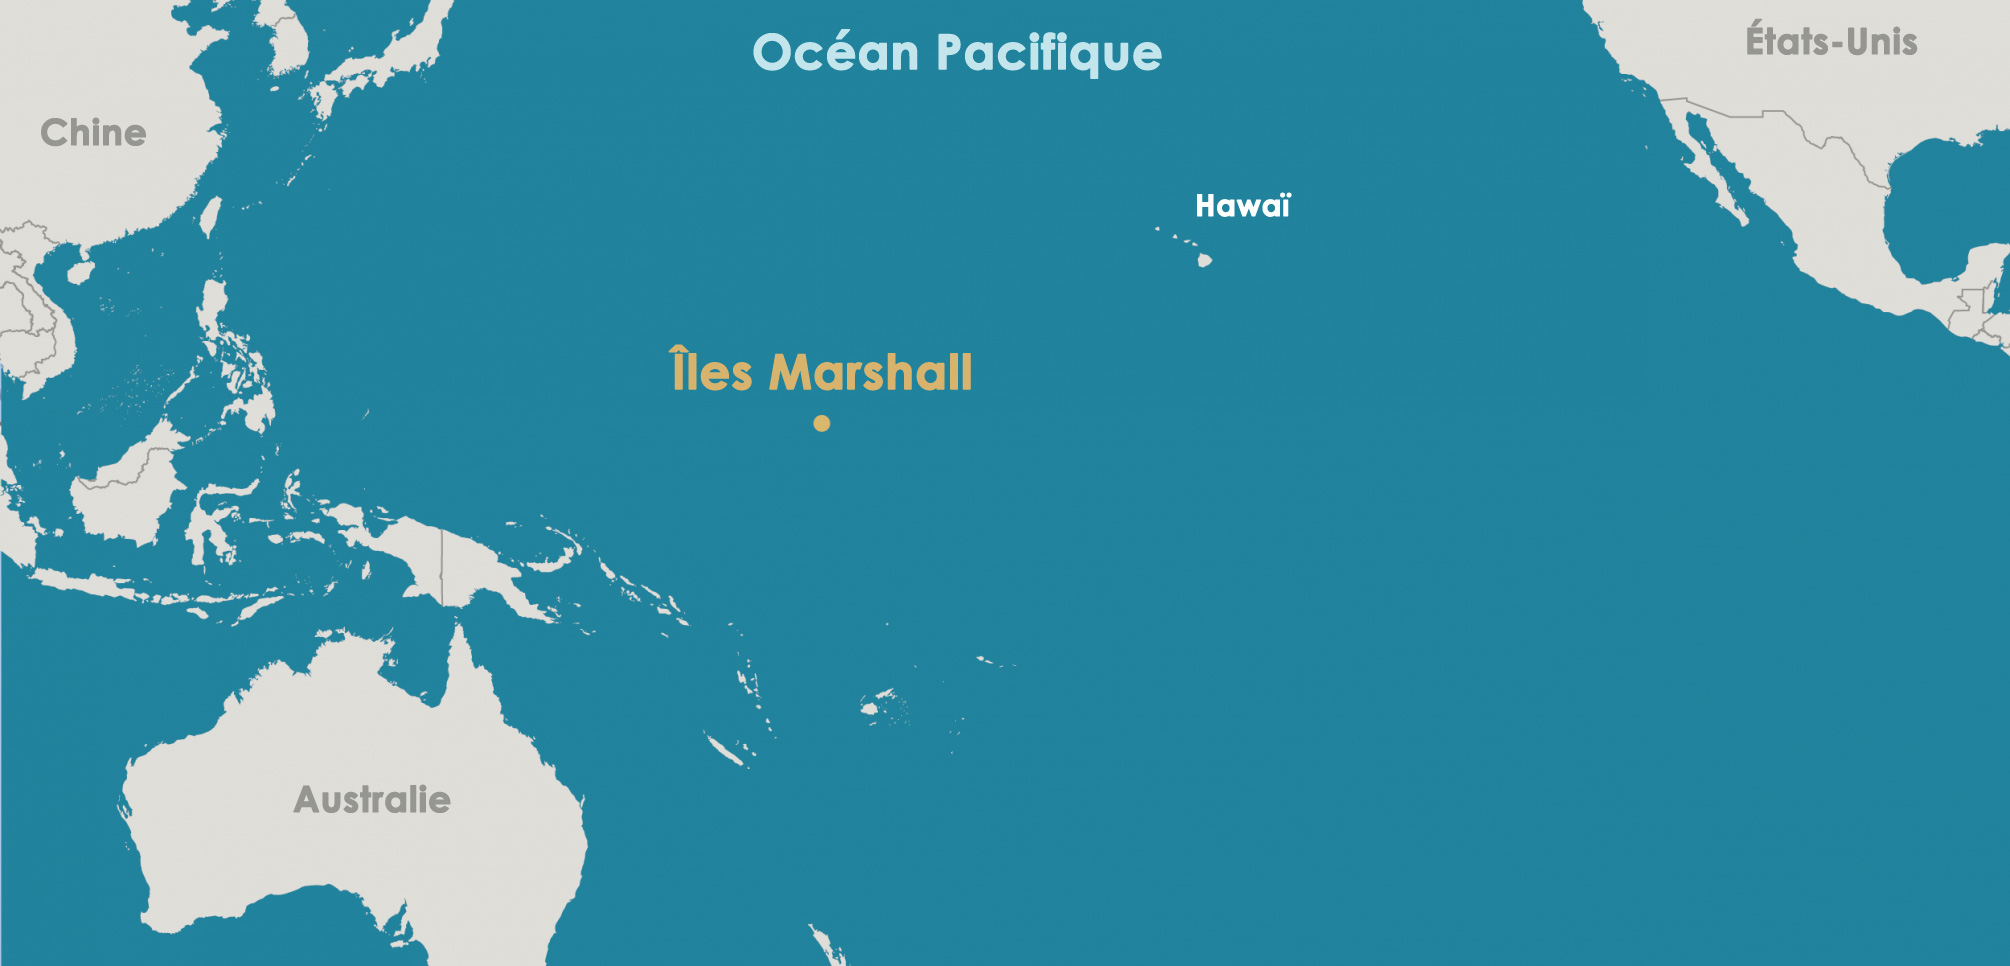 ulyces-ilesmarshall-map